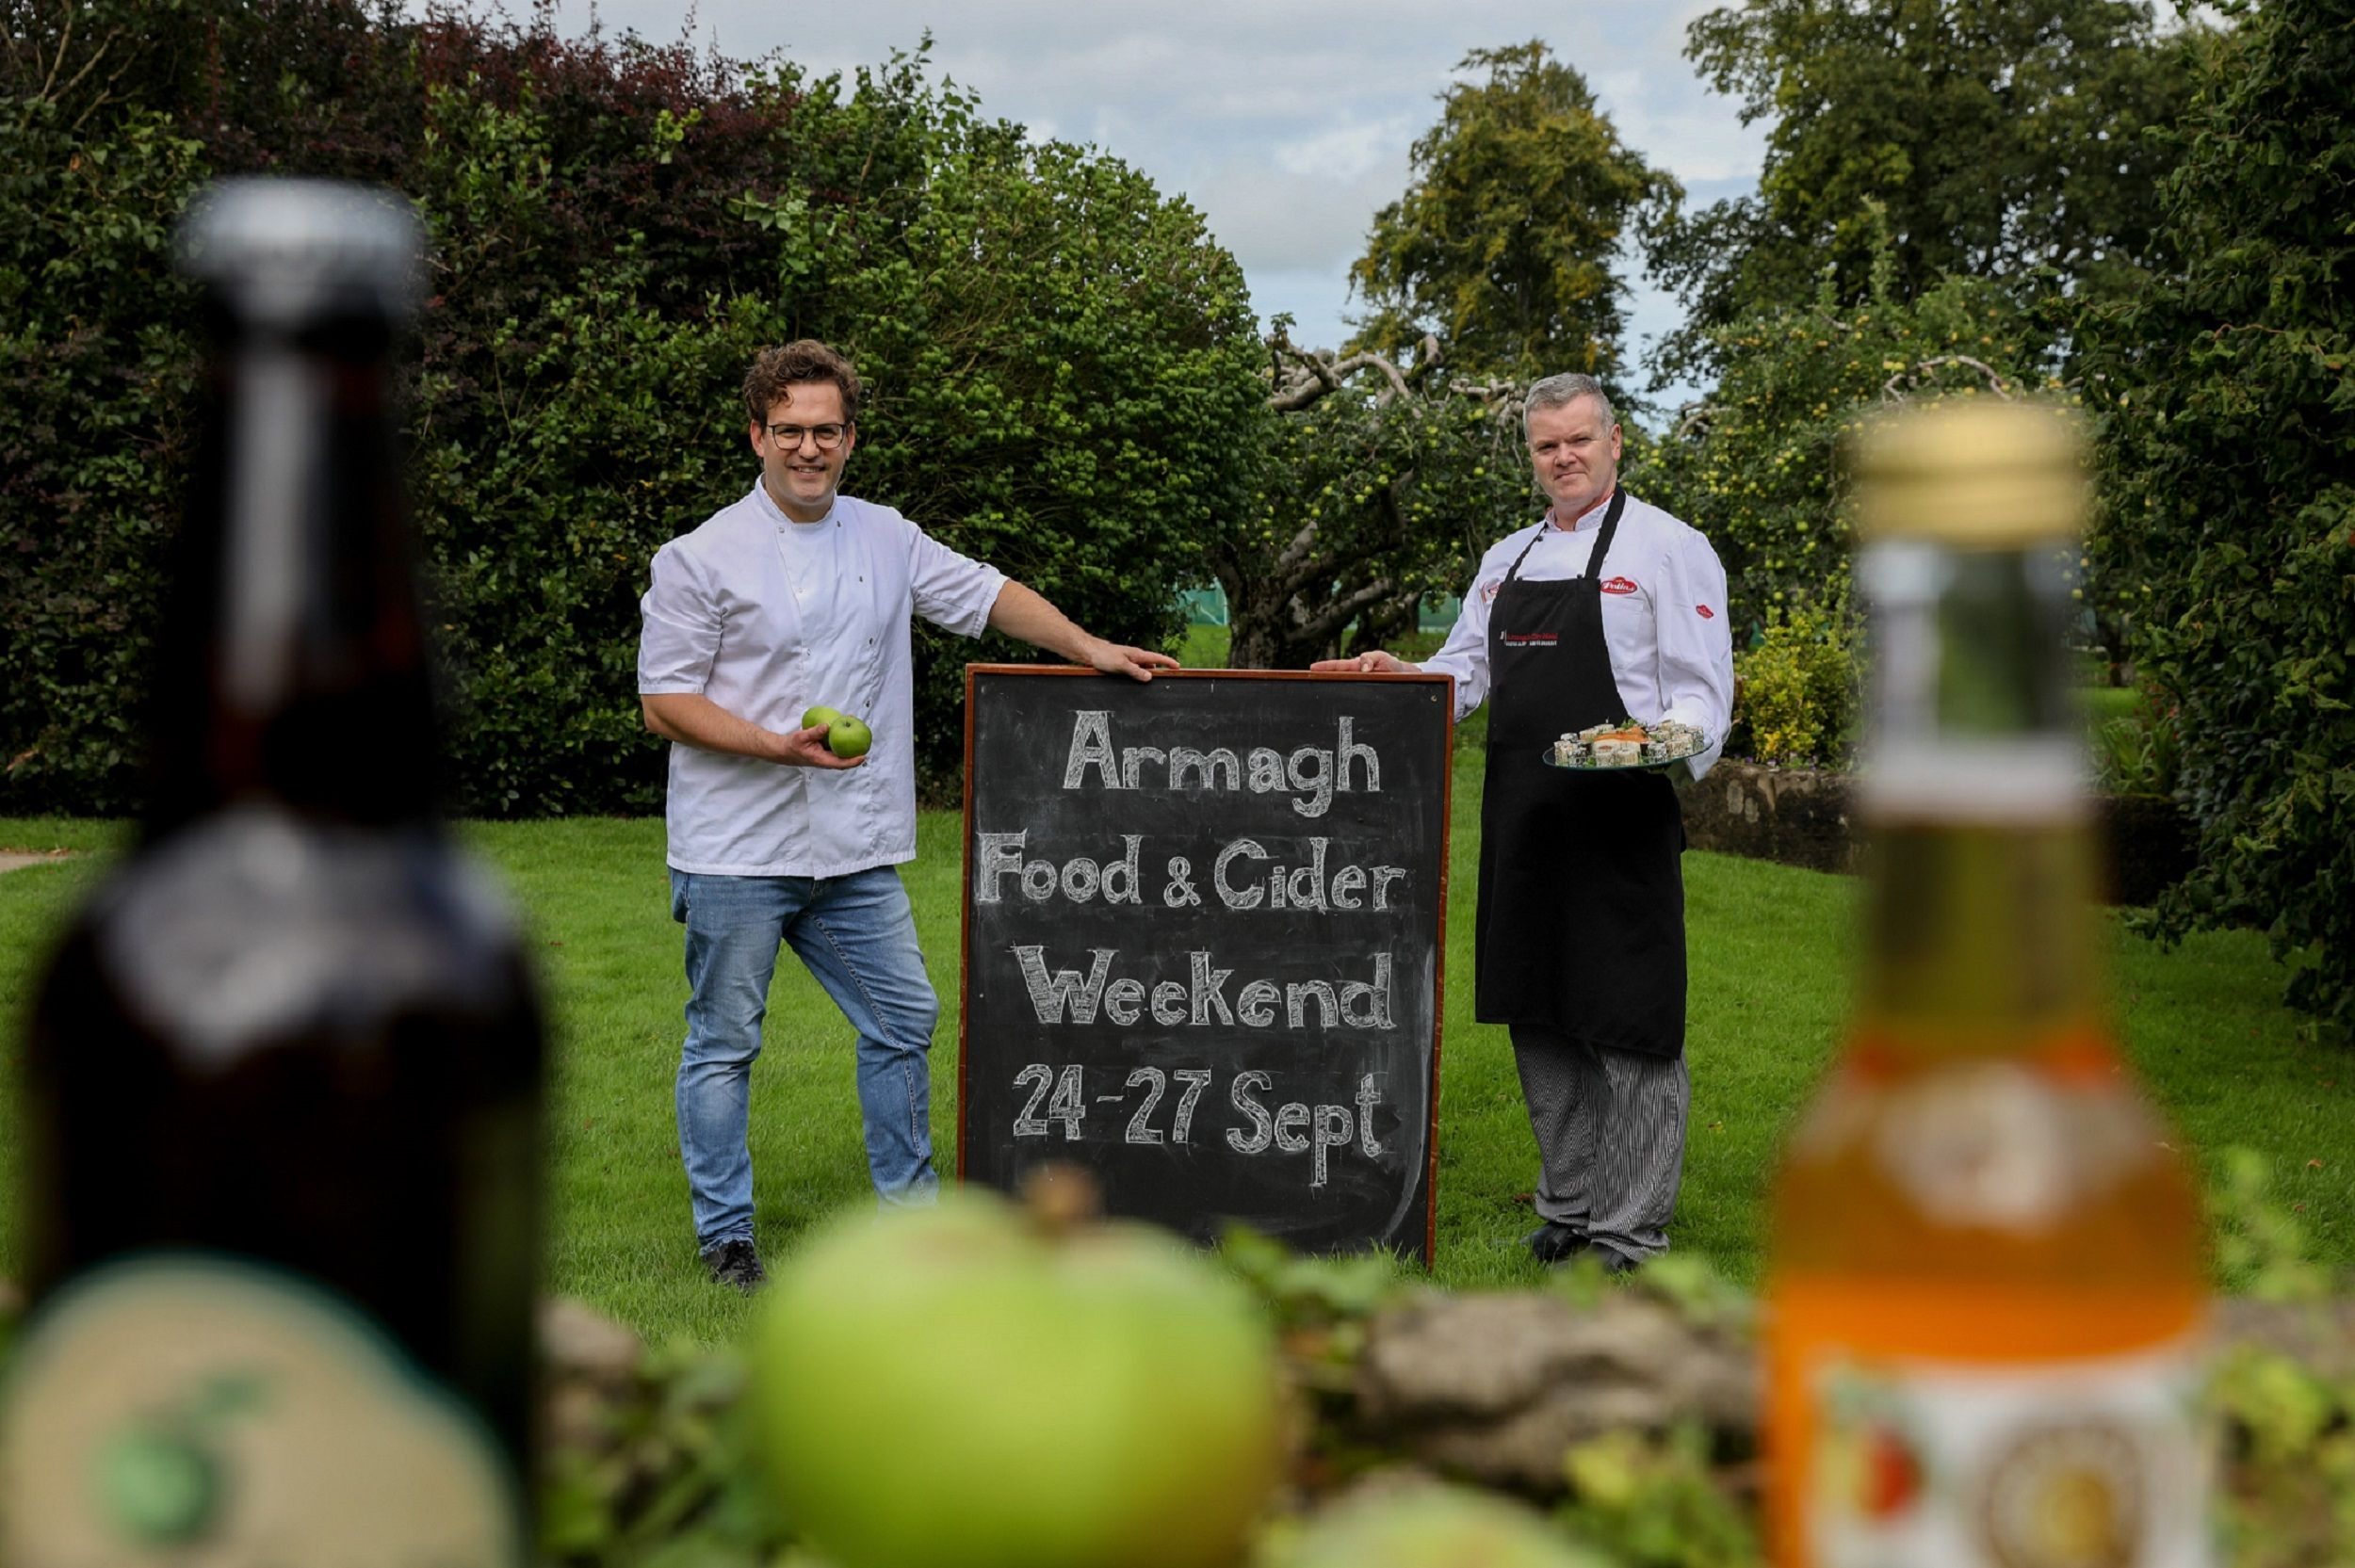 Armagh_food___cider_weekend_back_on_the_menu_1